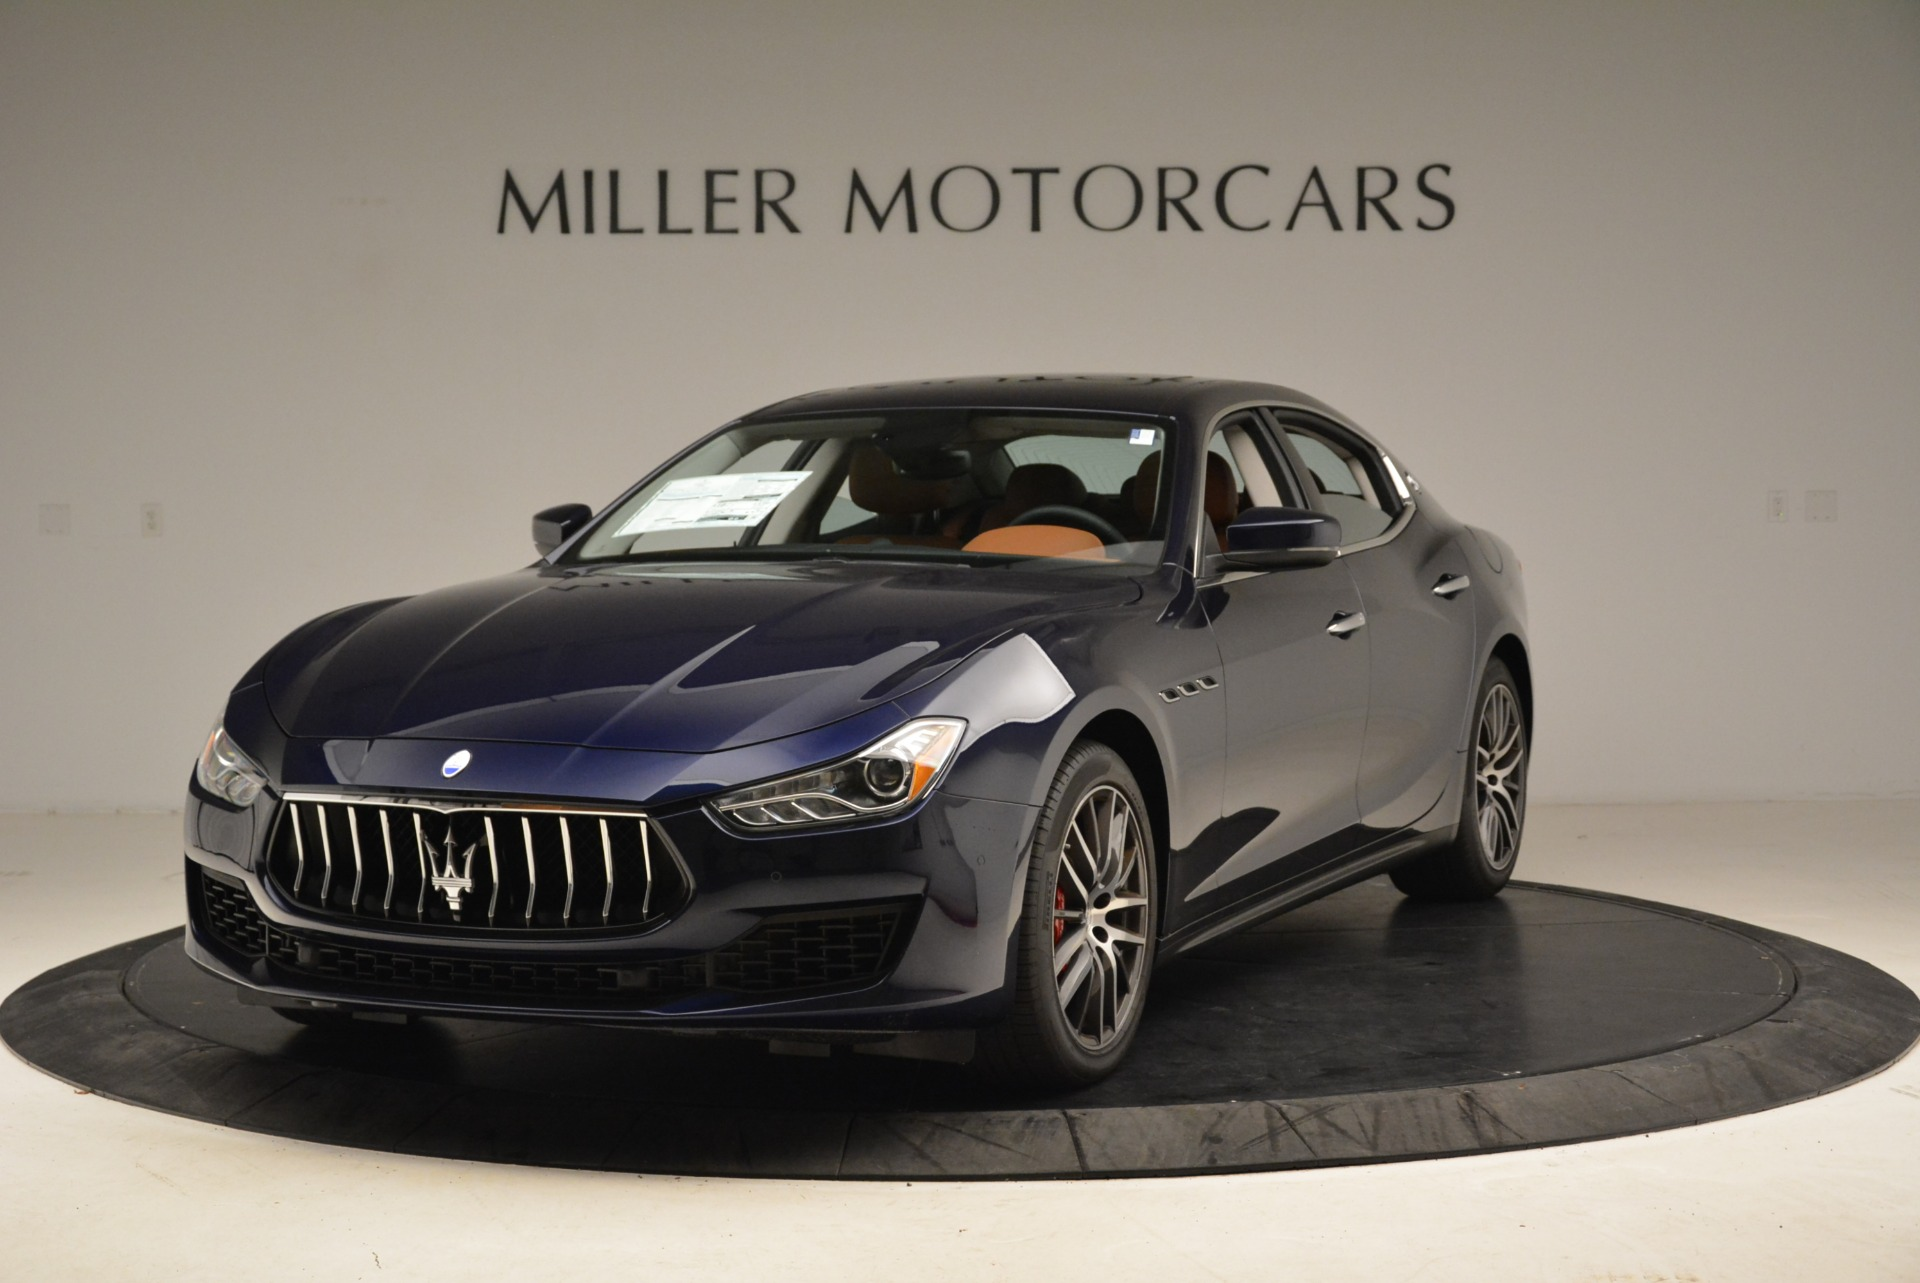 New 2019 Maserati Ghibli S Q4 For Sale In Greenwich, CT 2799_main